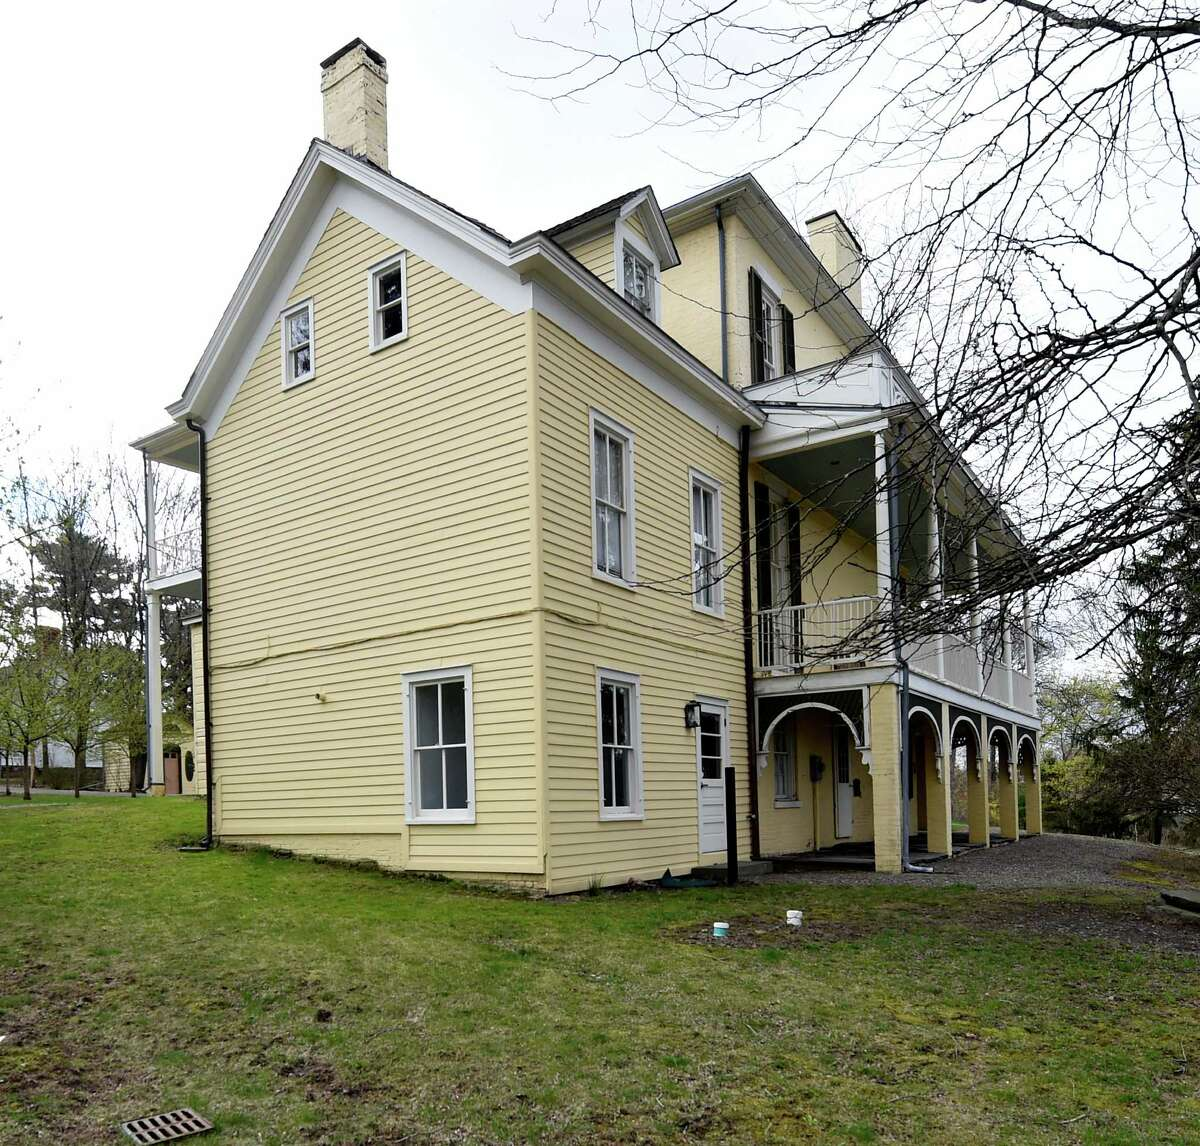 The Thomas Cole museum Friday April 24, 2015 in Catskill, N.Y. (Skip Dickstein/Times Union)